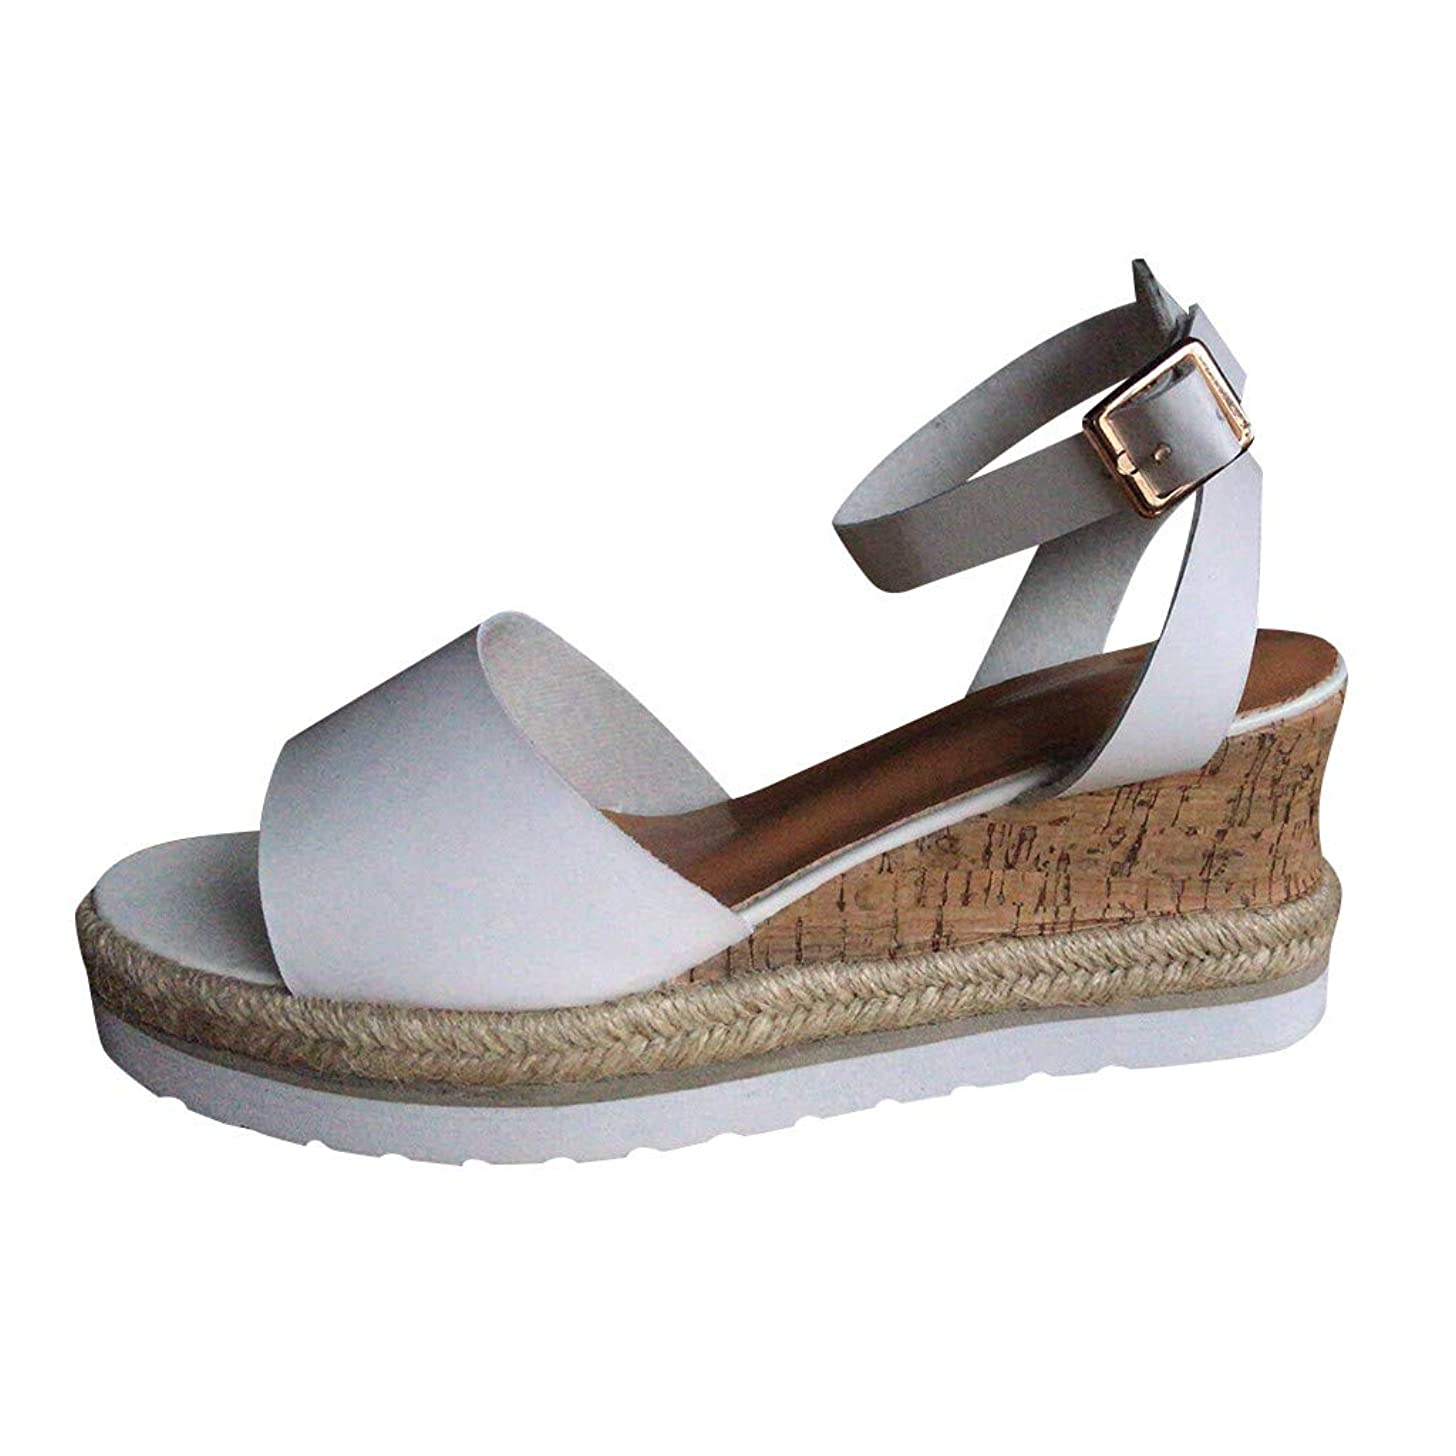 Women's Casual Peep Toe Thick Bottom Shoes Solid Sweet Single Buckle Platform Wedges Sandals JHKUNO